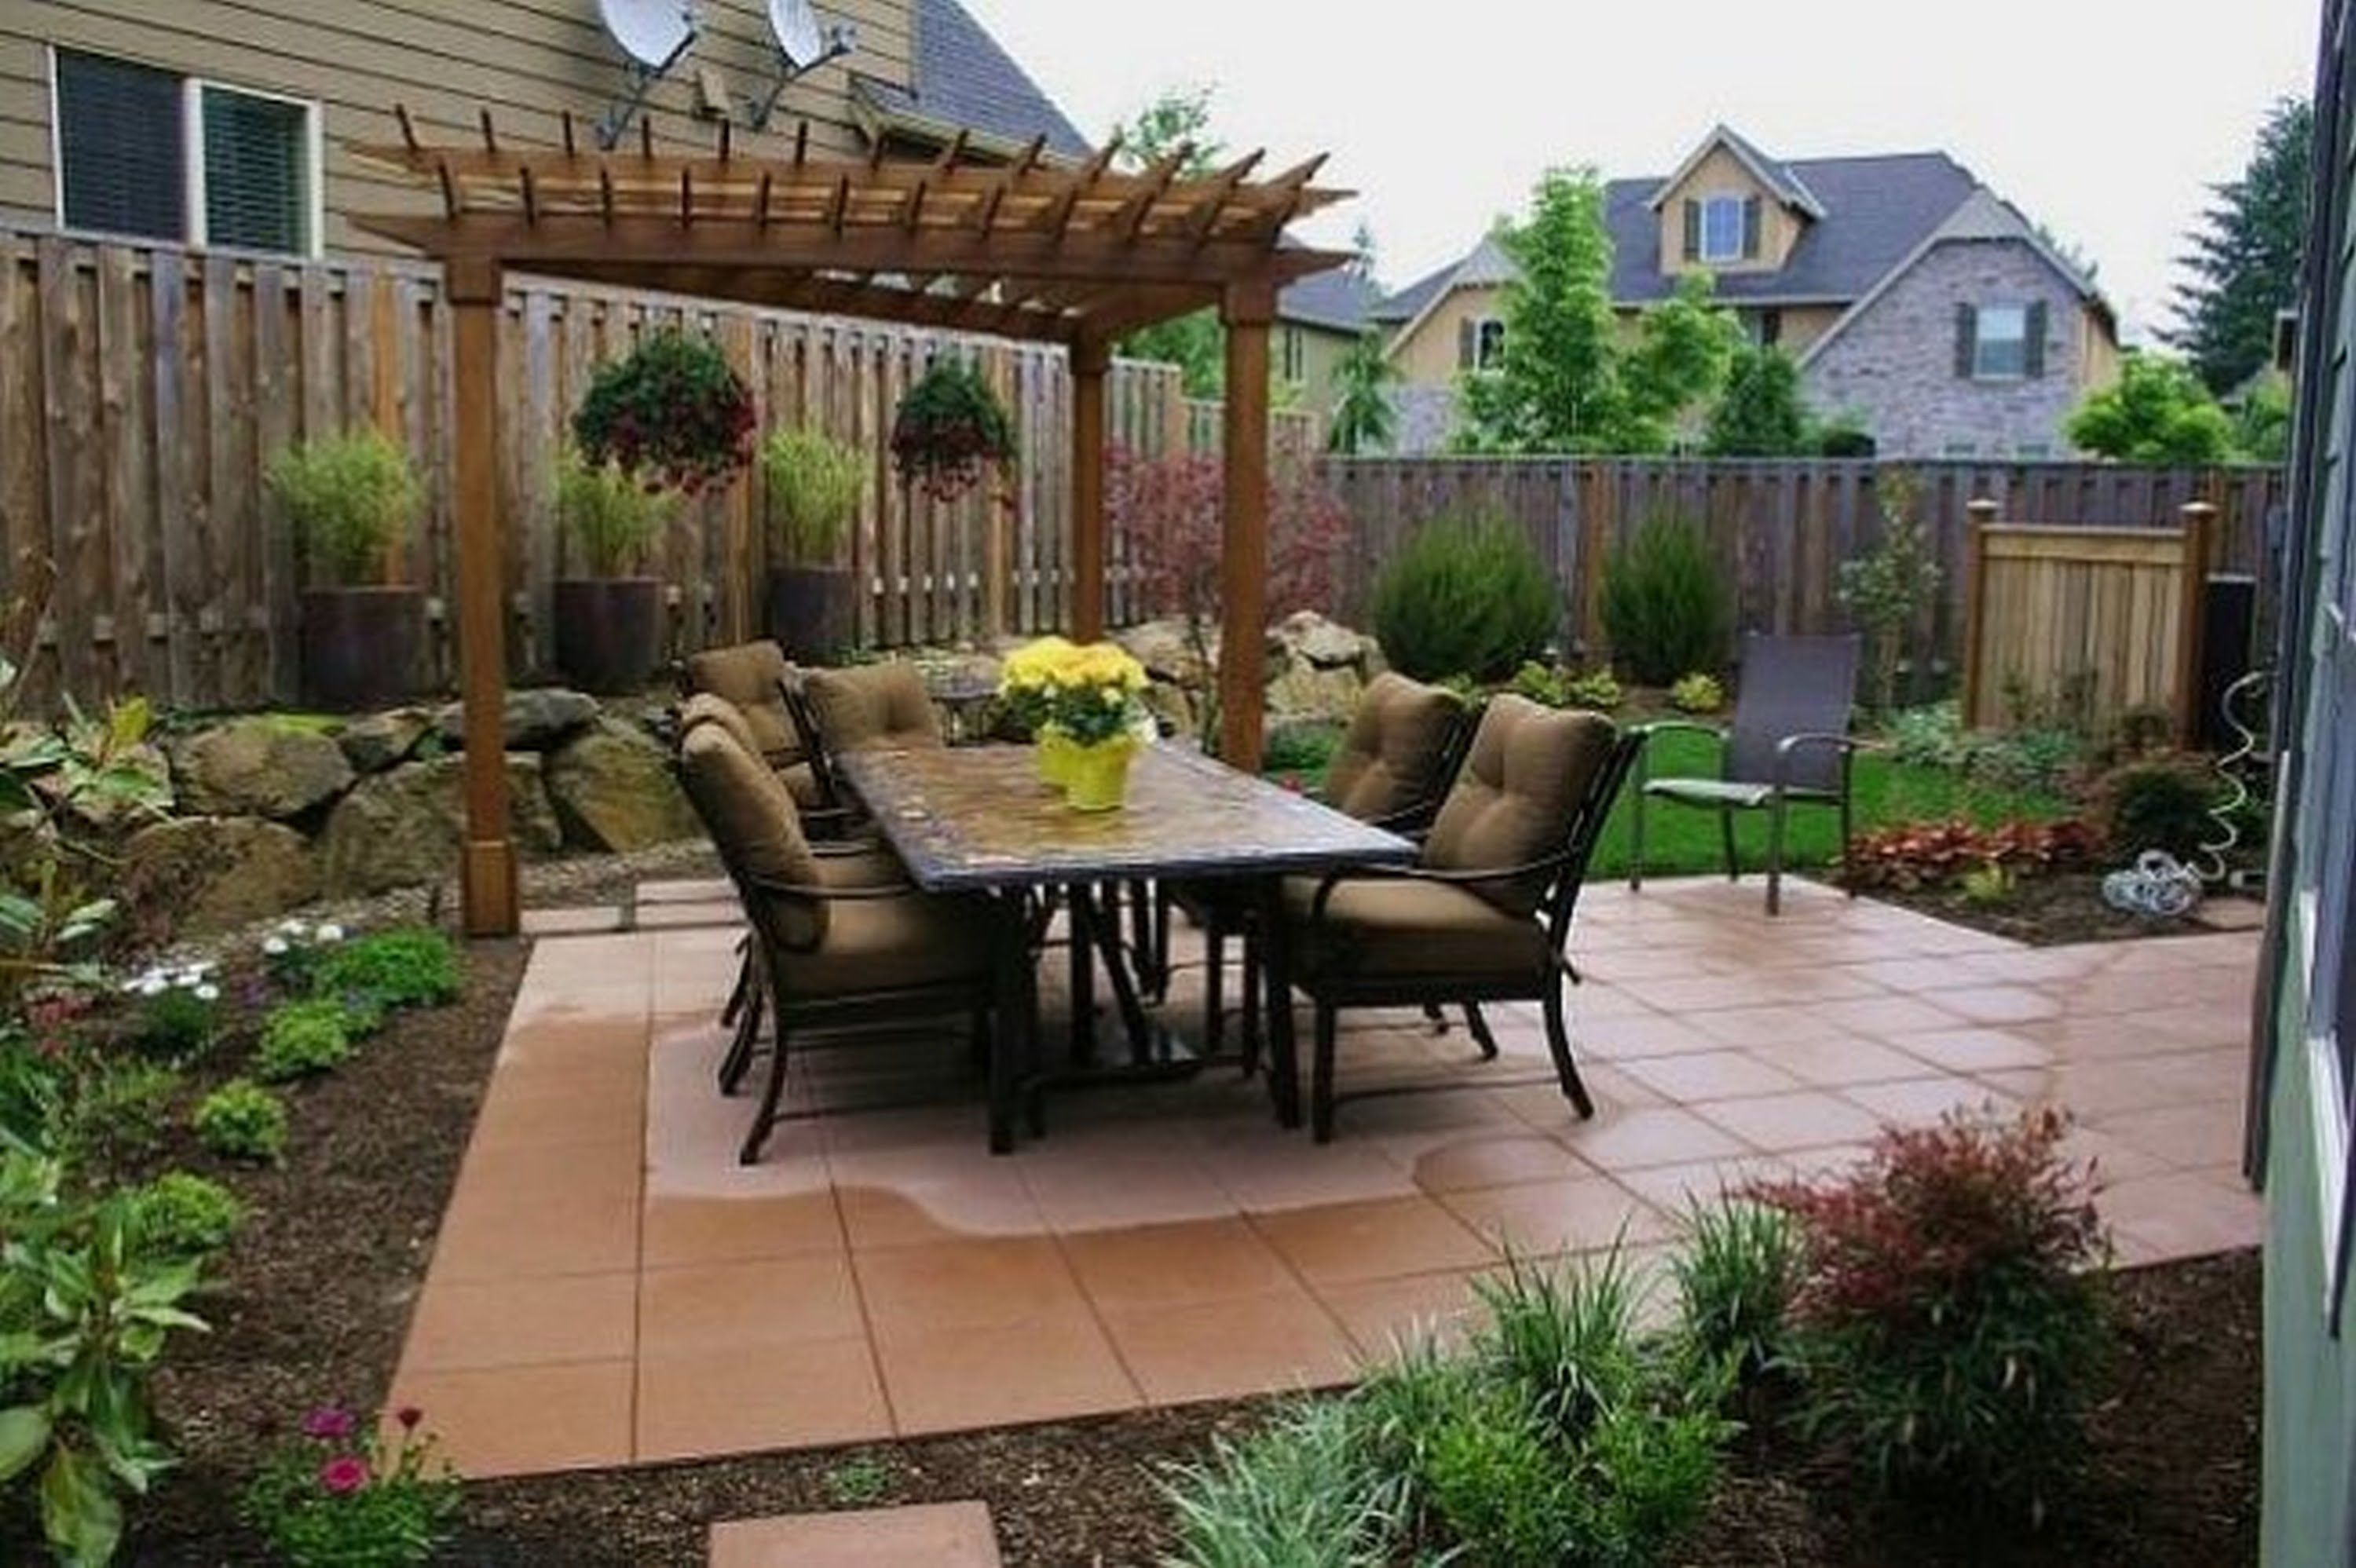 Landscaping For Small Yards On A Budget #landscaping | Landscaping ...